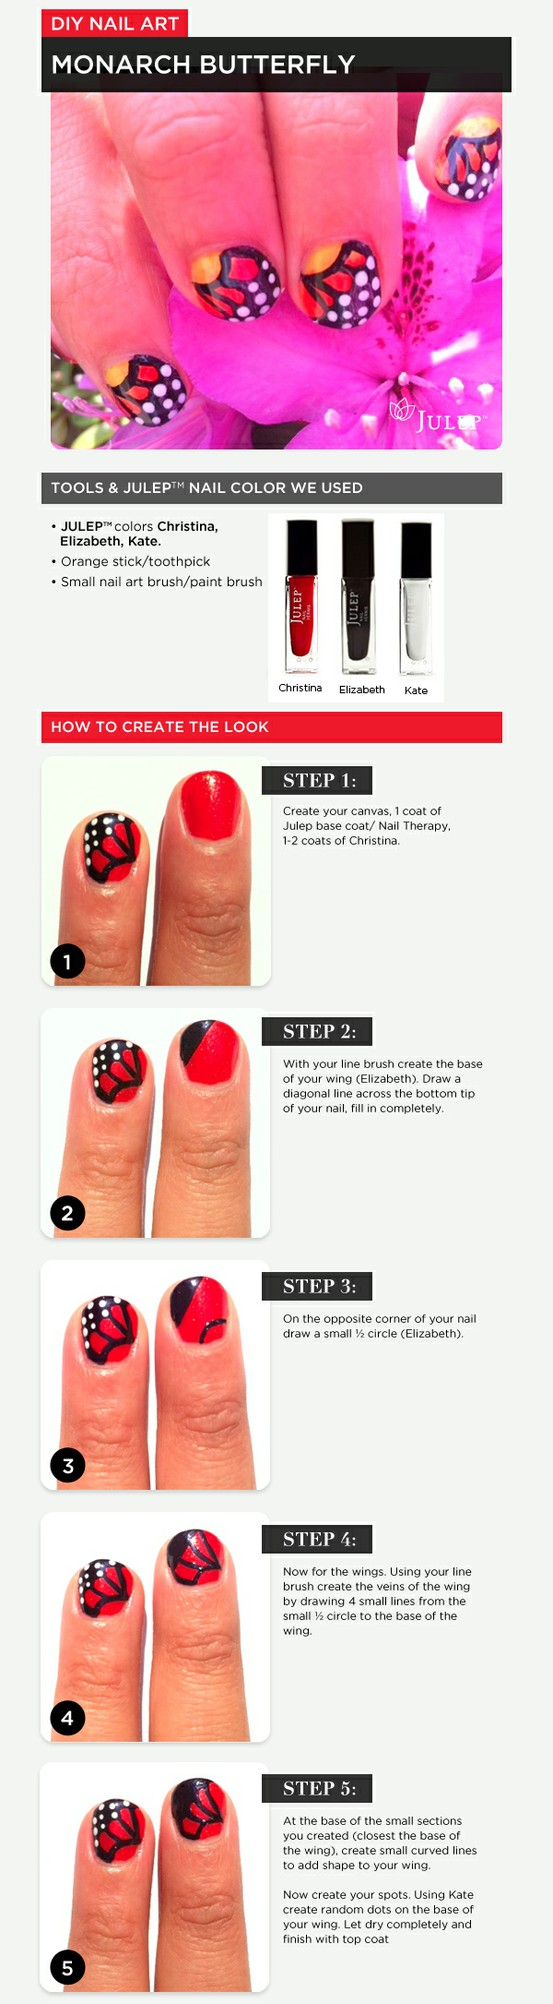 step by step instructions | My Style | Pinterest | Butterfly nail ...